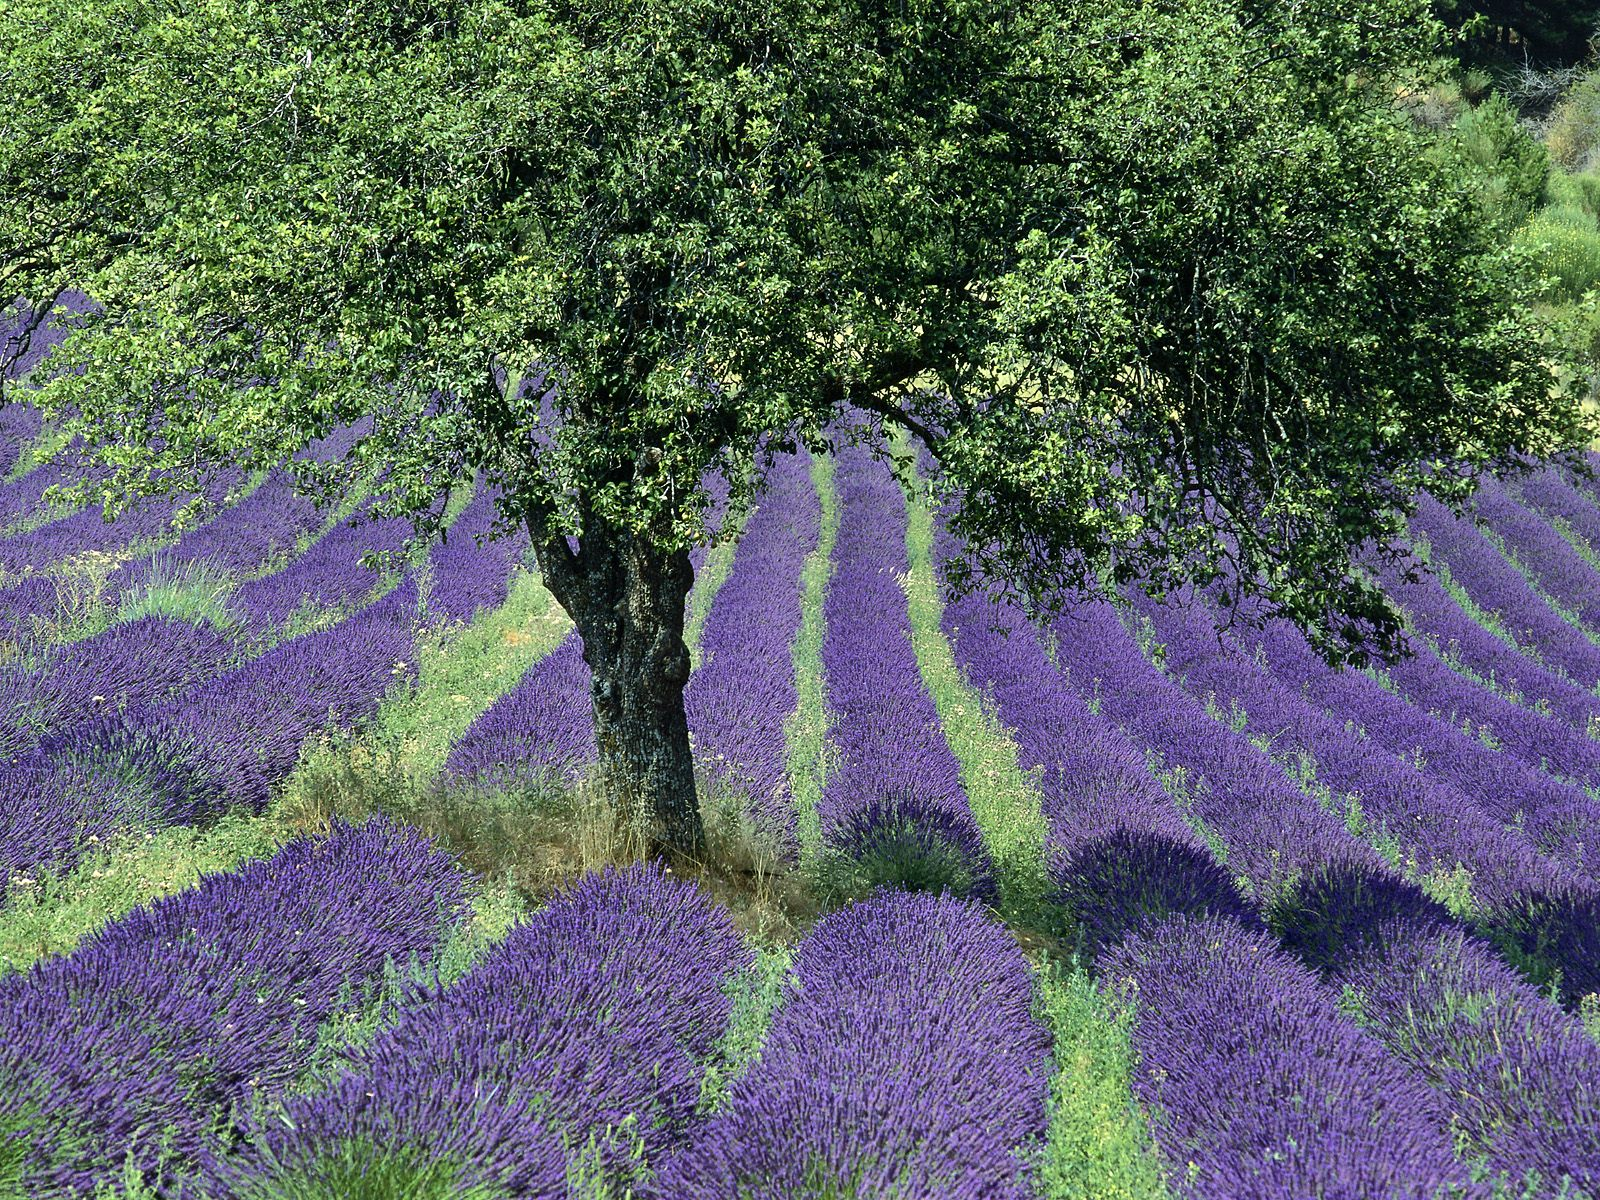 HQ Lavender Field Provence France Wallpaper   HQ Wallpapers 1600x1200